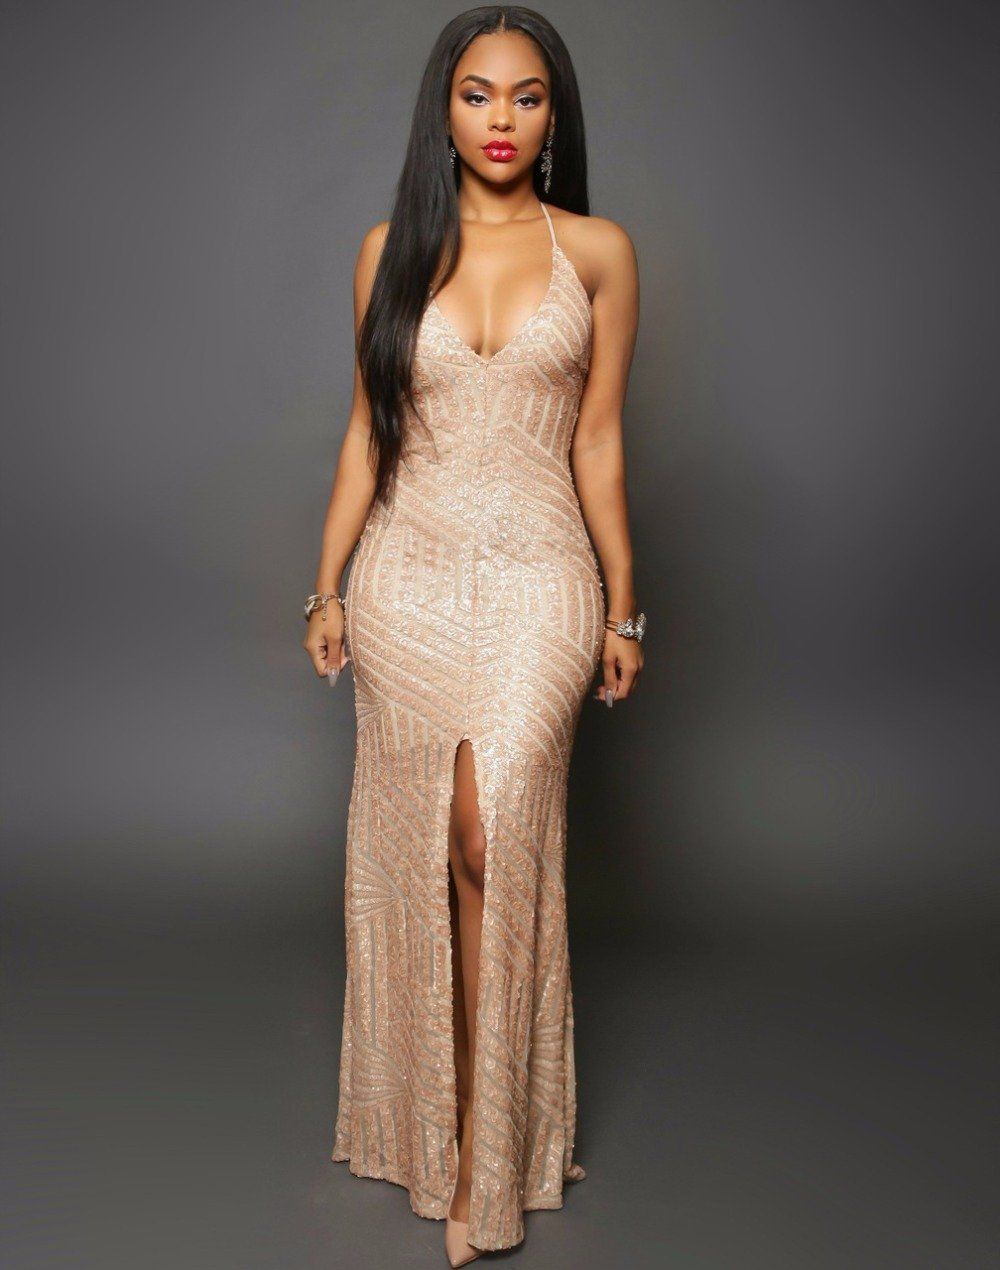 36873498ceeb Glamorous Evening Dresses Black Gold Sequins Gown | Products | Boutique